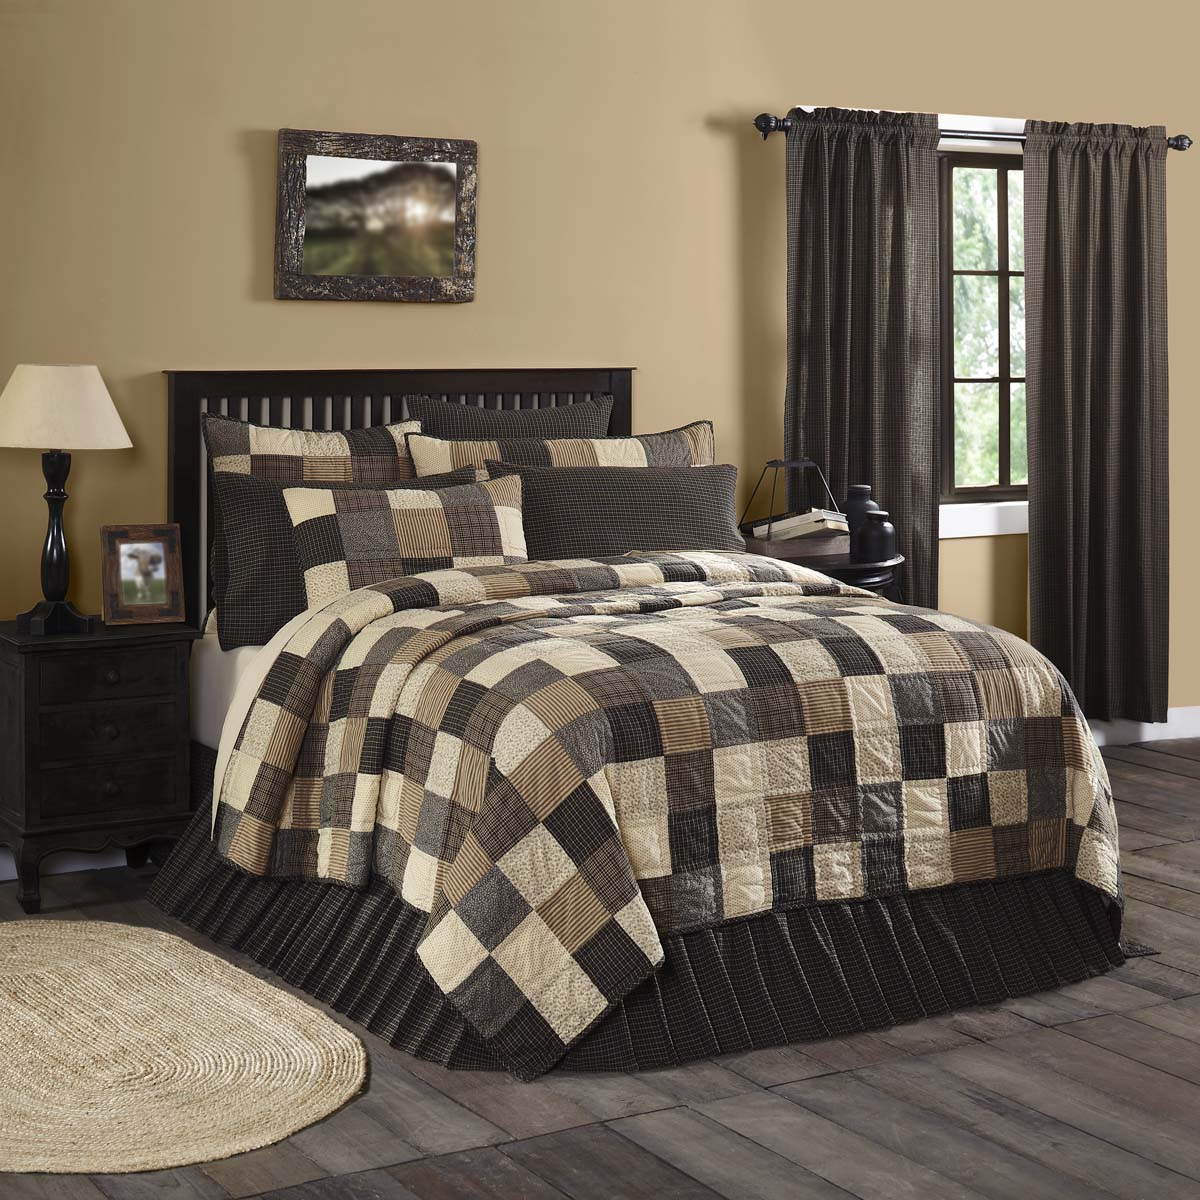 Kettle Grove King Quilt 110Wx97L - Woodrol